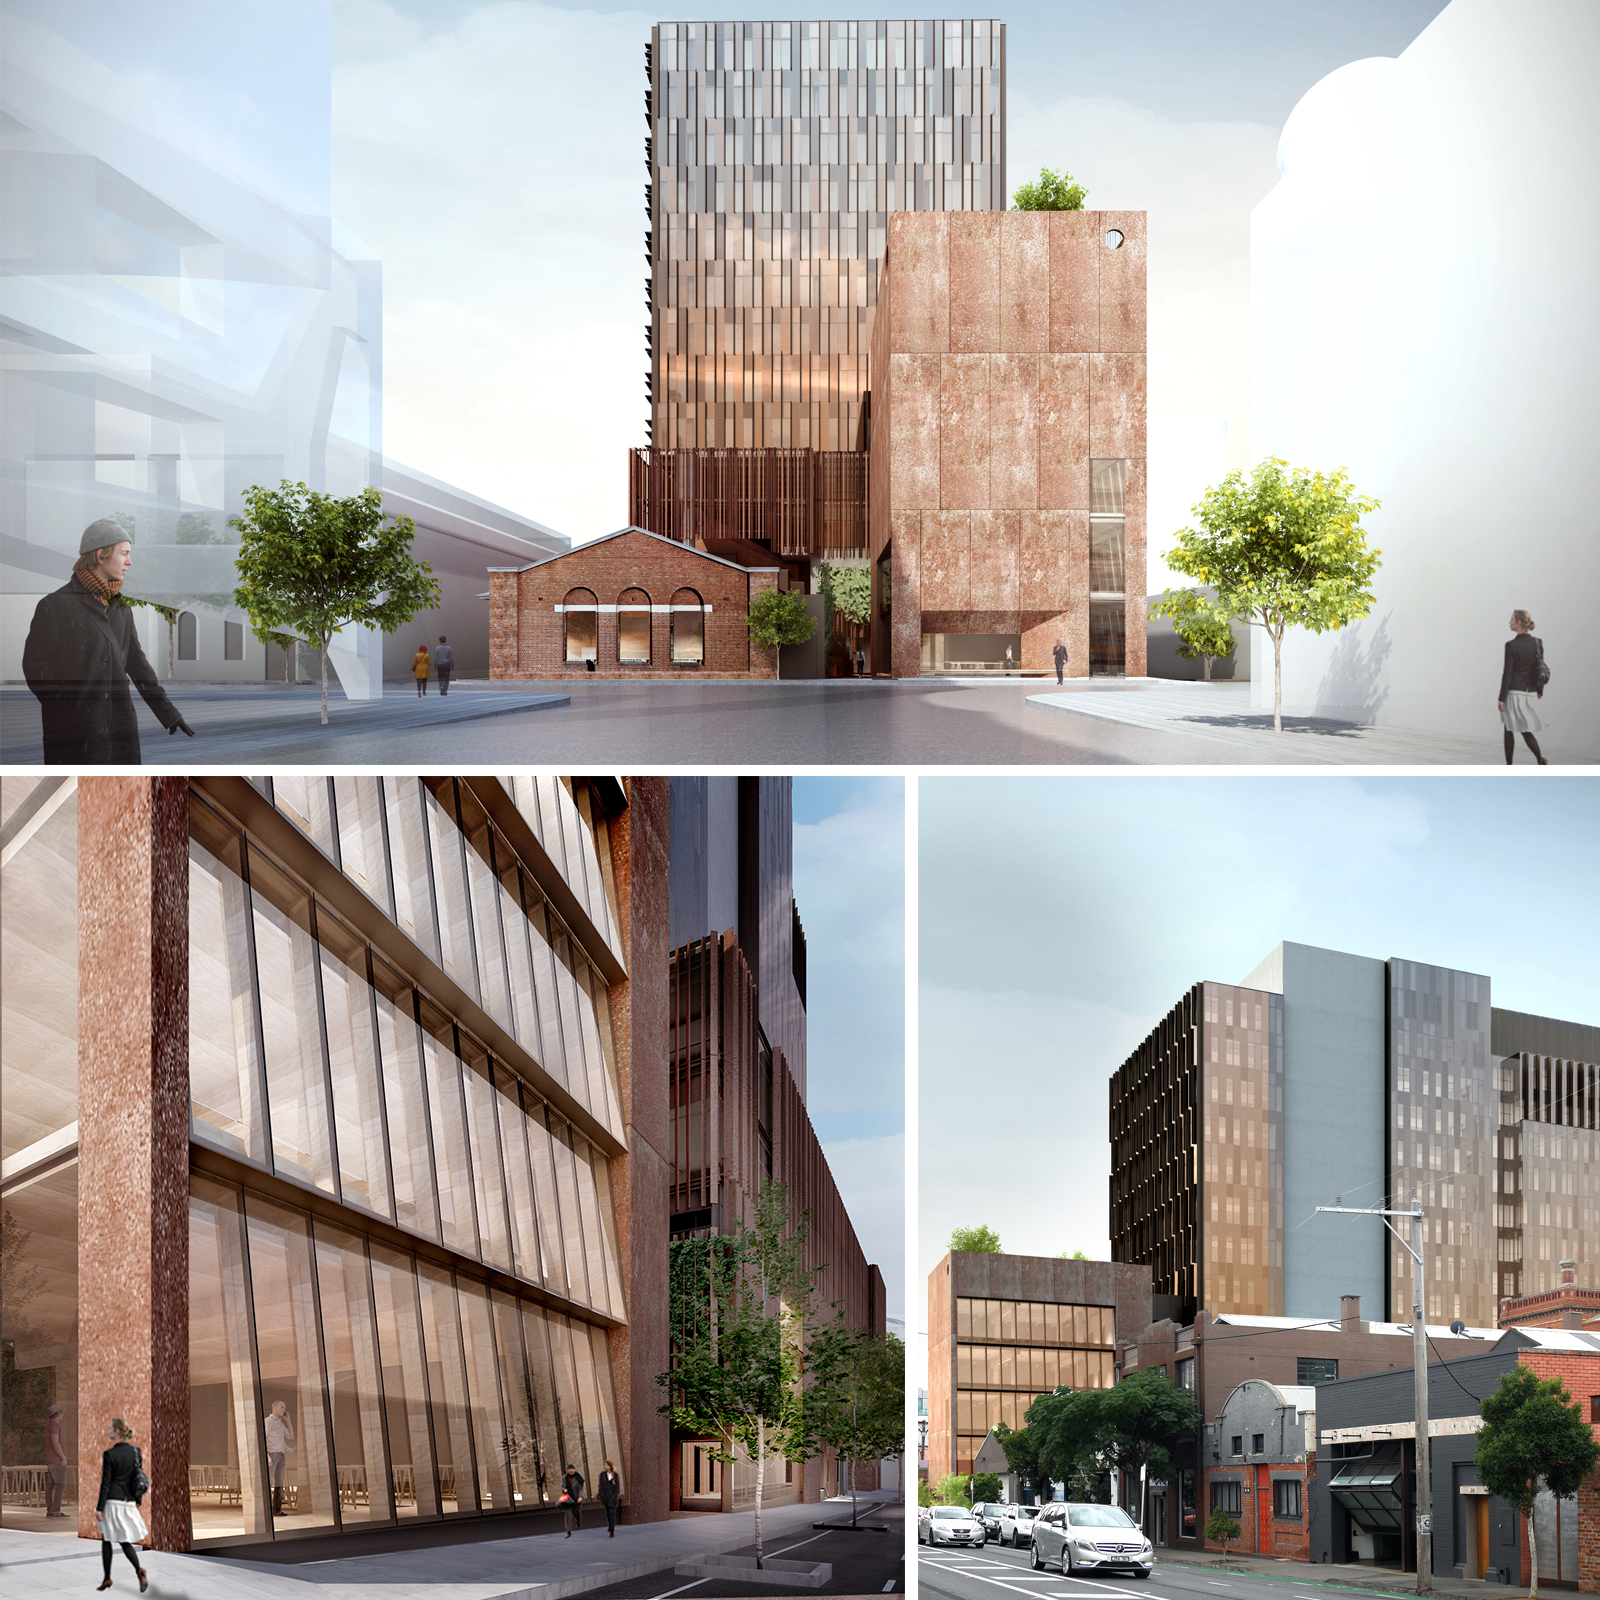 VCAT gave planning approval to the project in mid-2017, overturning the initial Yarra City Council decision to reduce the scale and height of the building.